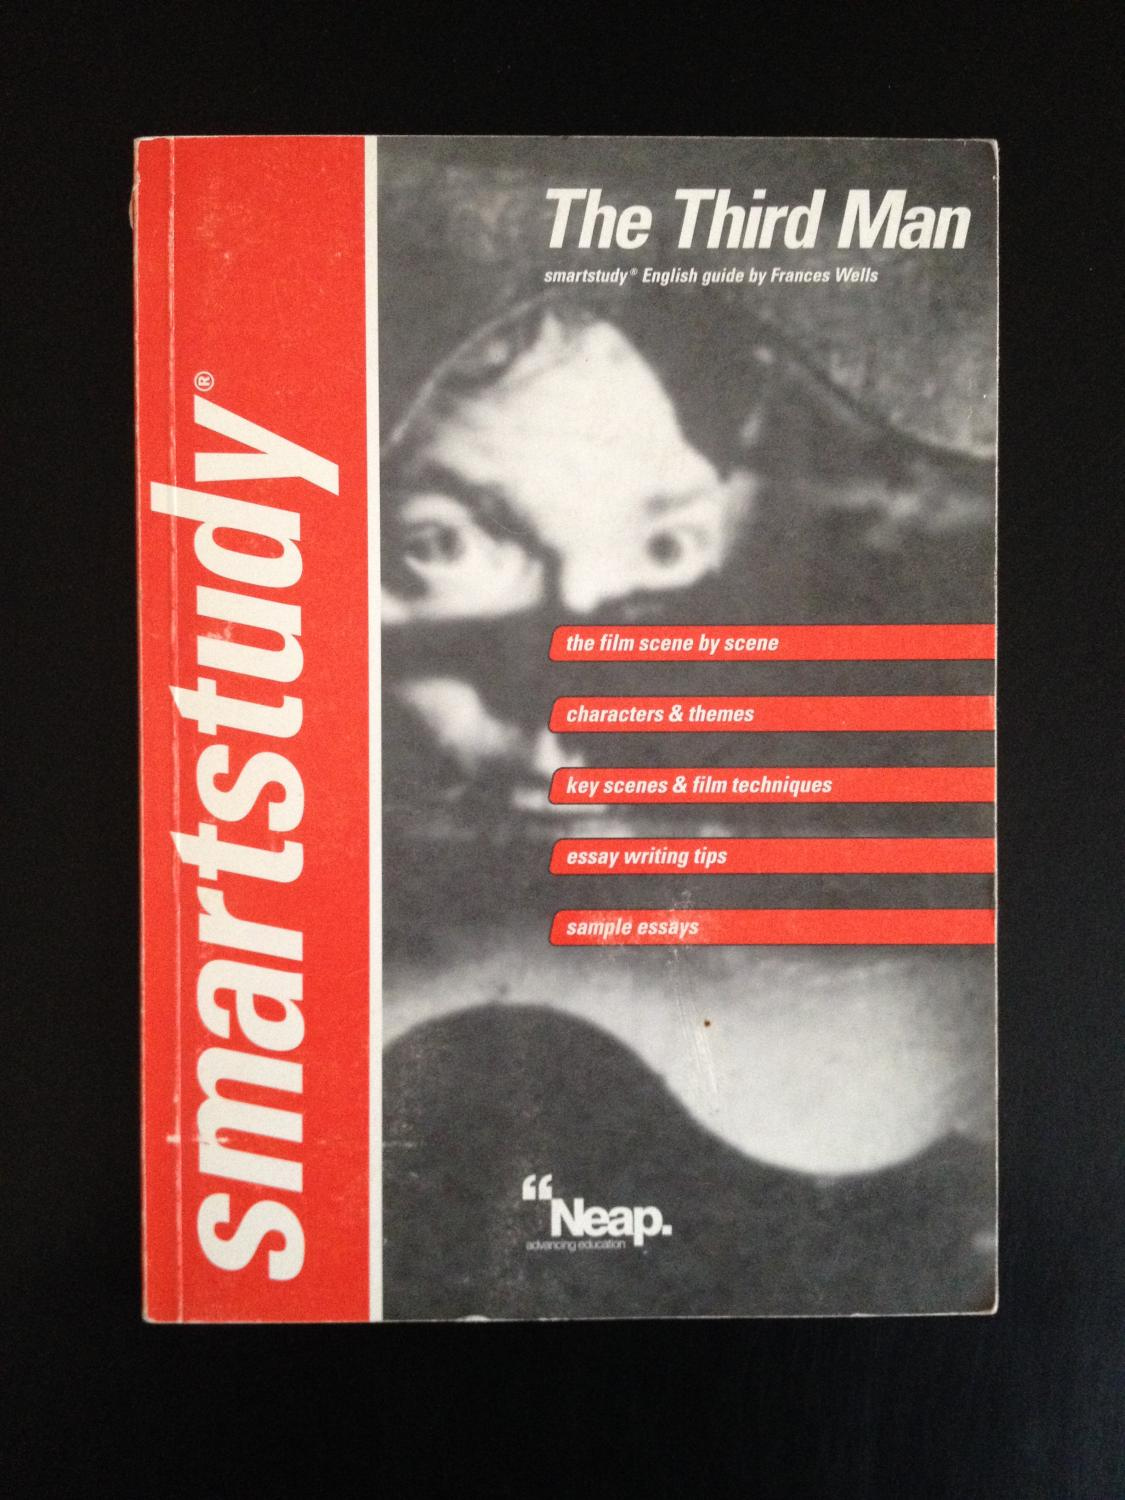 third man essay Movie-the third man essay  for a long time, the individual's relationship with the past has been preserved in their memories as a natural process - movie-the third man essay introduction.